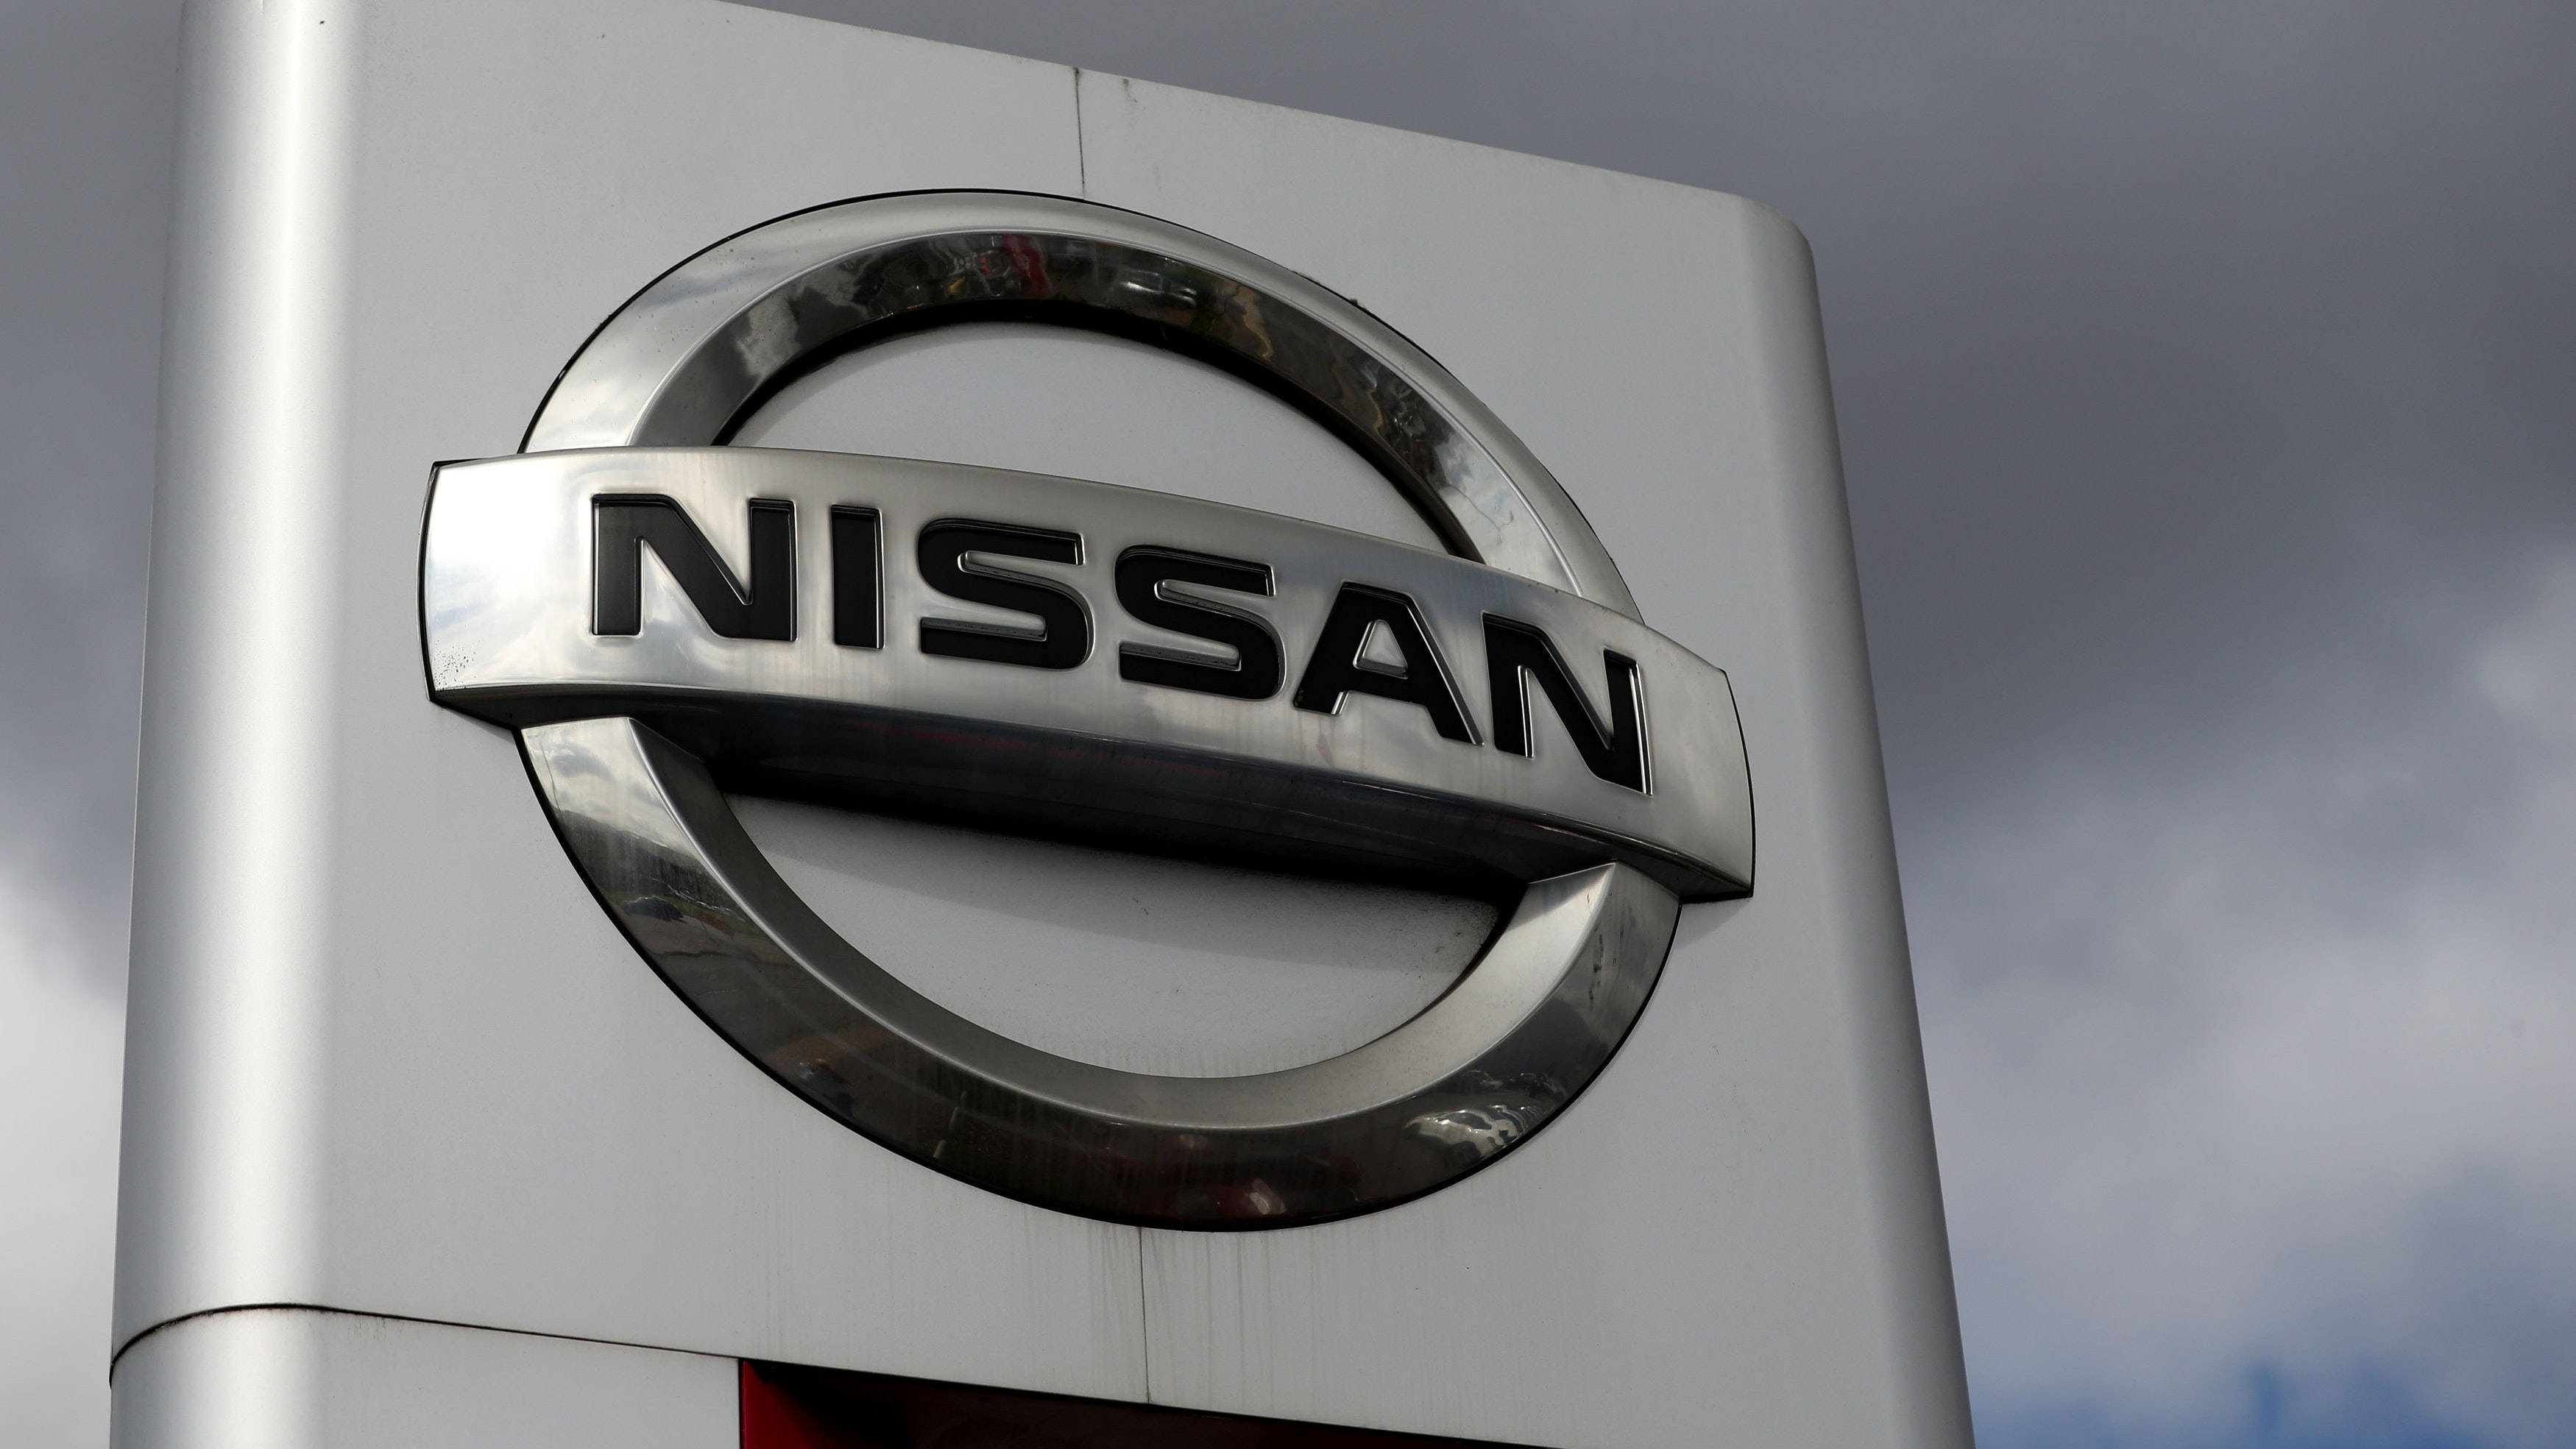 Nissan £61m in doubt after investment U-turn